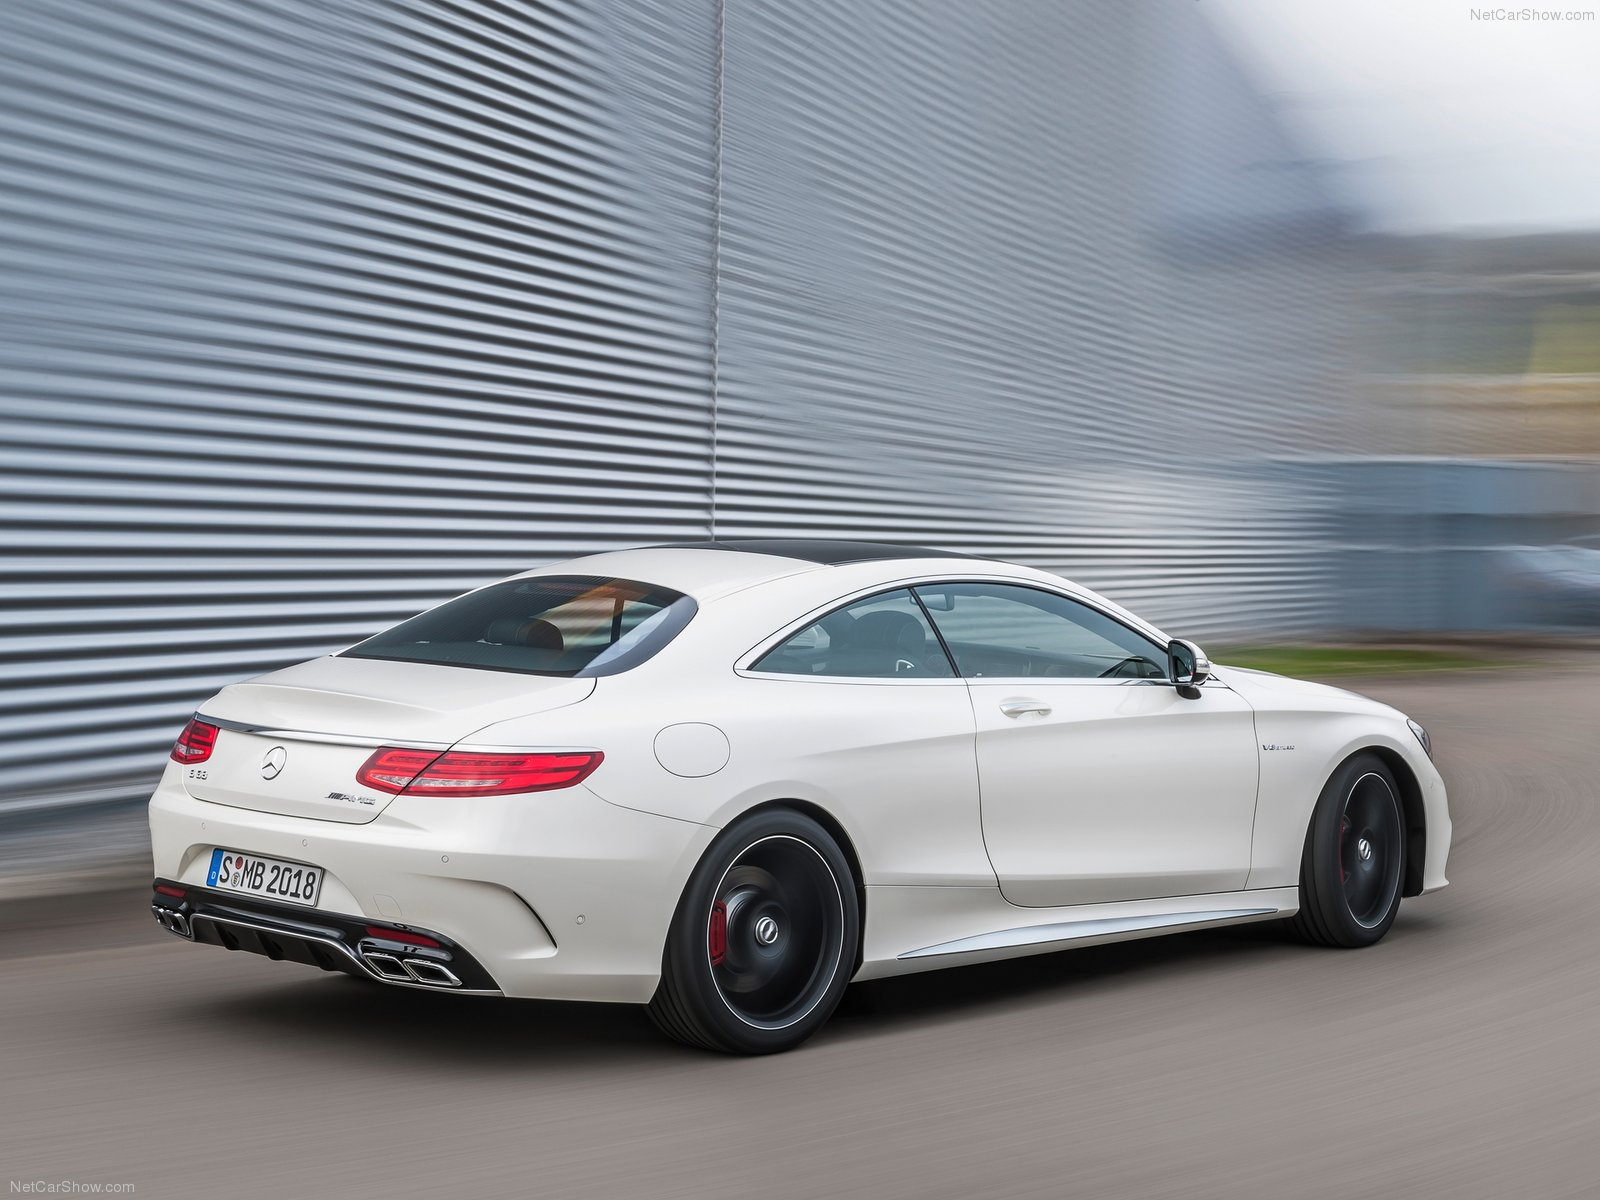 S63 Amg Coupe >> Mercedes Benz S63 Amg Coupe Picture 125600 Mercedes Benz